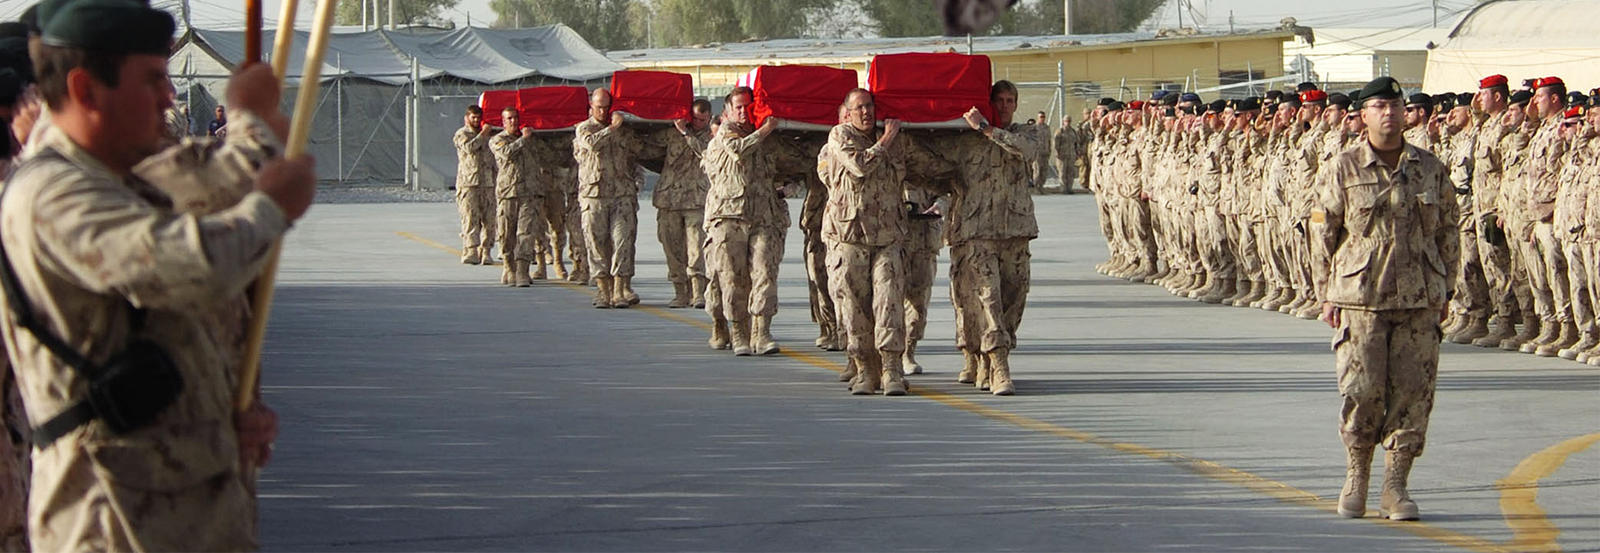 soldiers carrying coffins